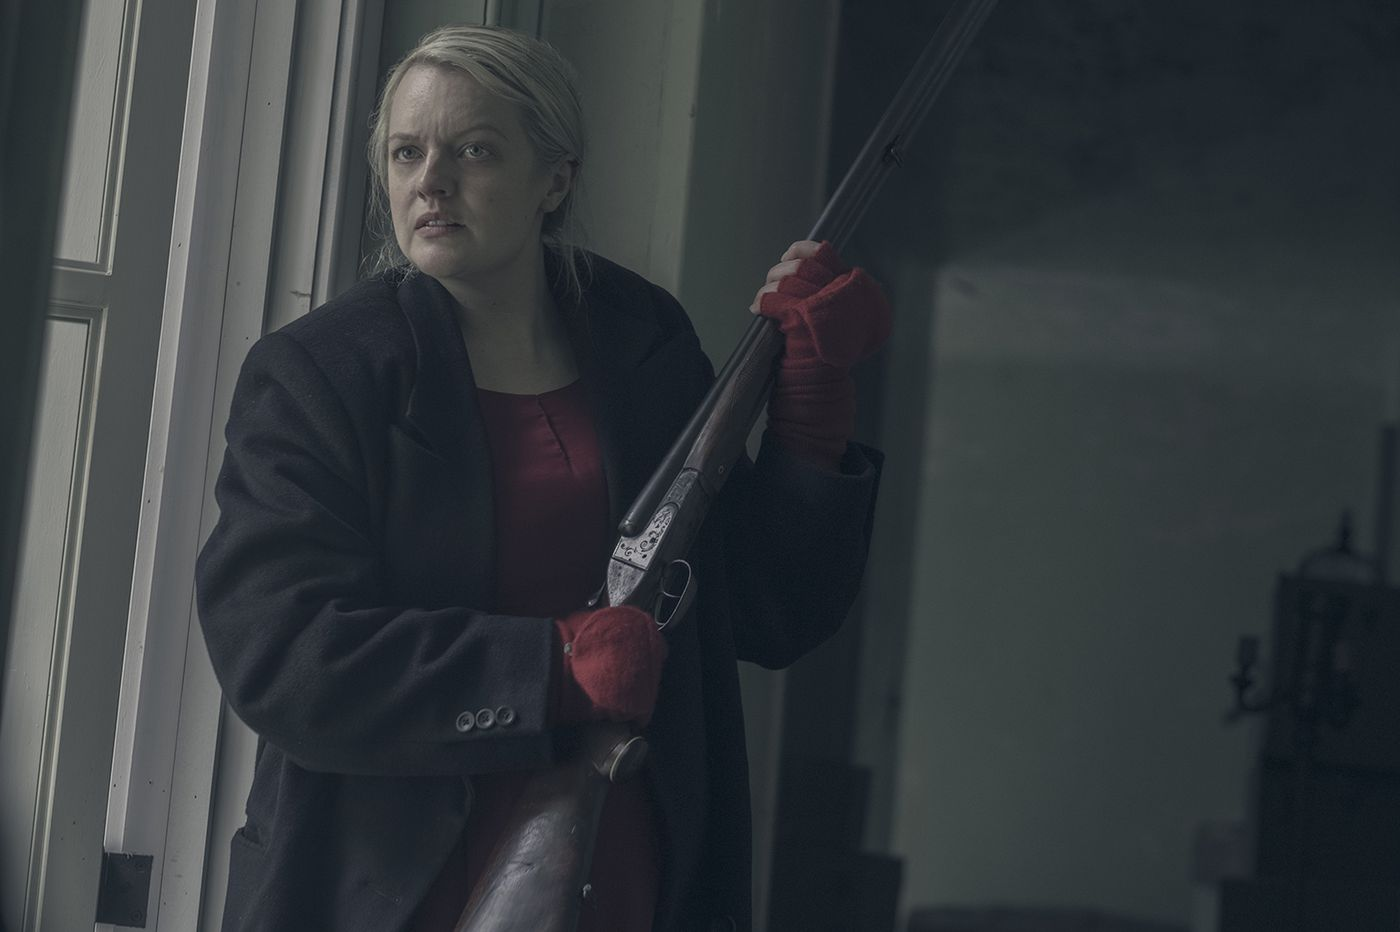 Hulu's 'Handmaid's Tale' is the one TV show right now that refuses to be a distraction